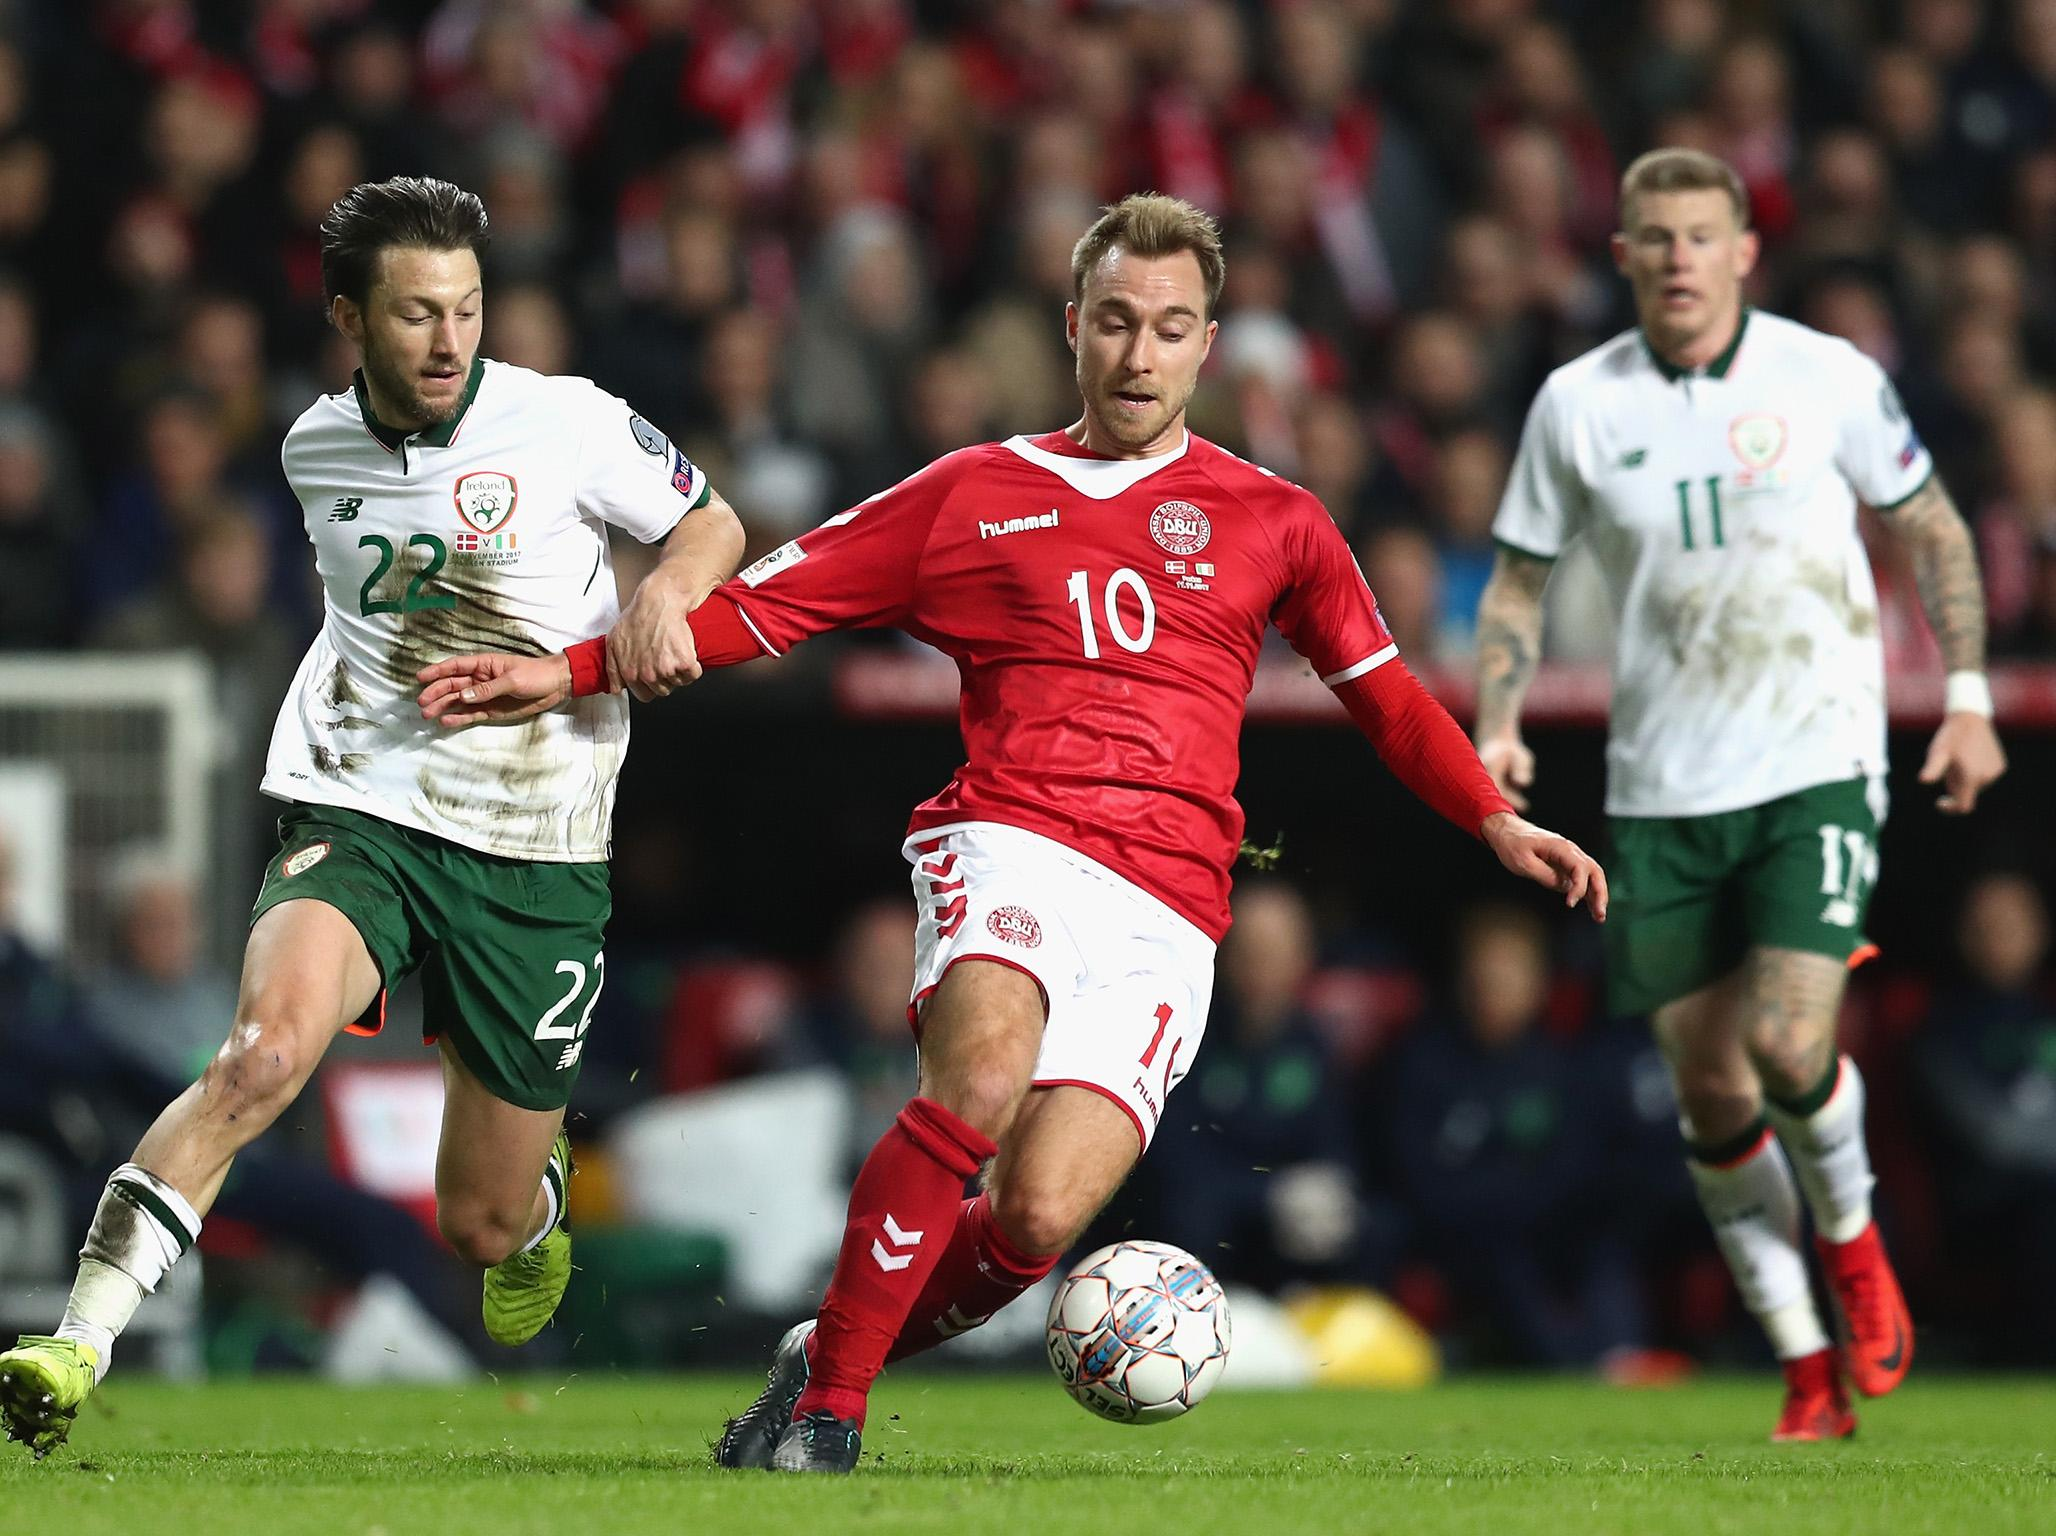 Republic of Ireland hold Denmark to low-quality but high-pressure draw and set up grand occasion in Dublin